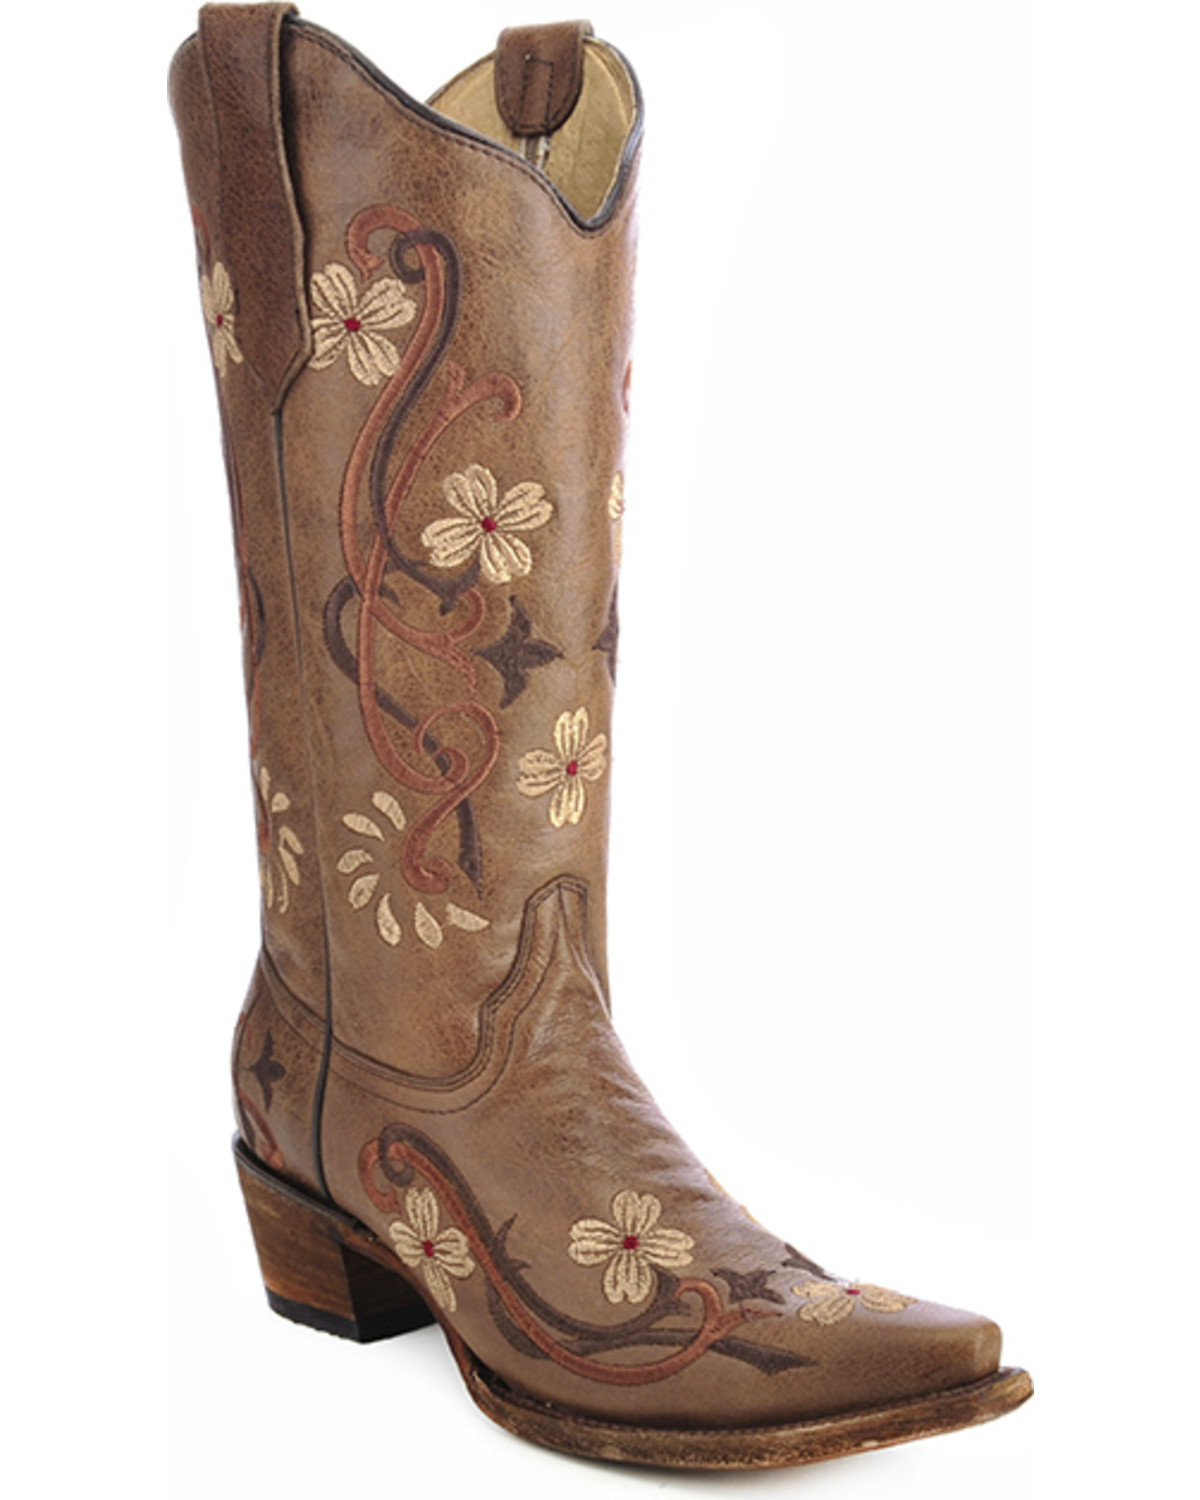 circle g floral embroidered boots snip toe